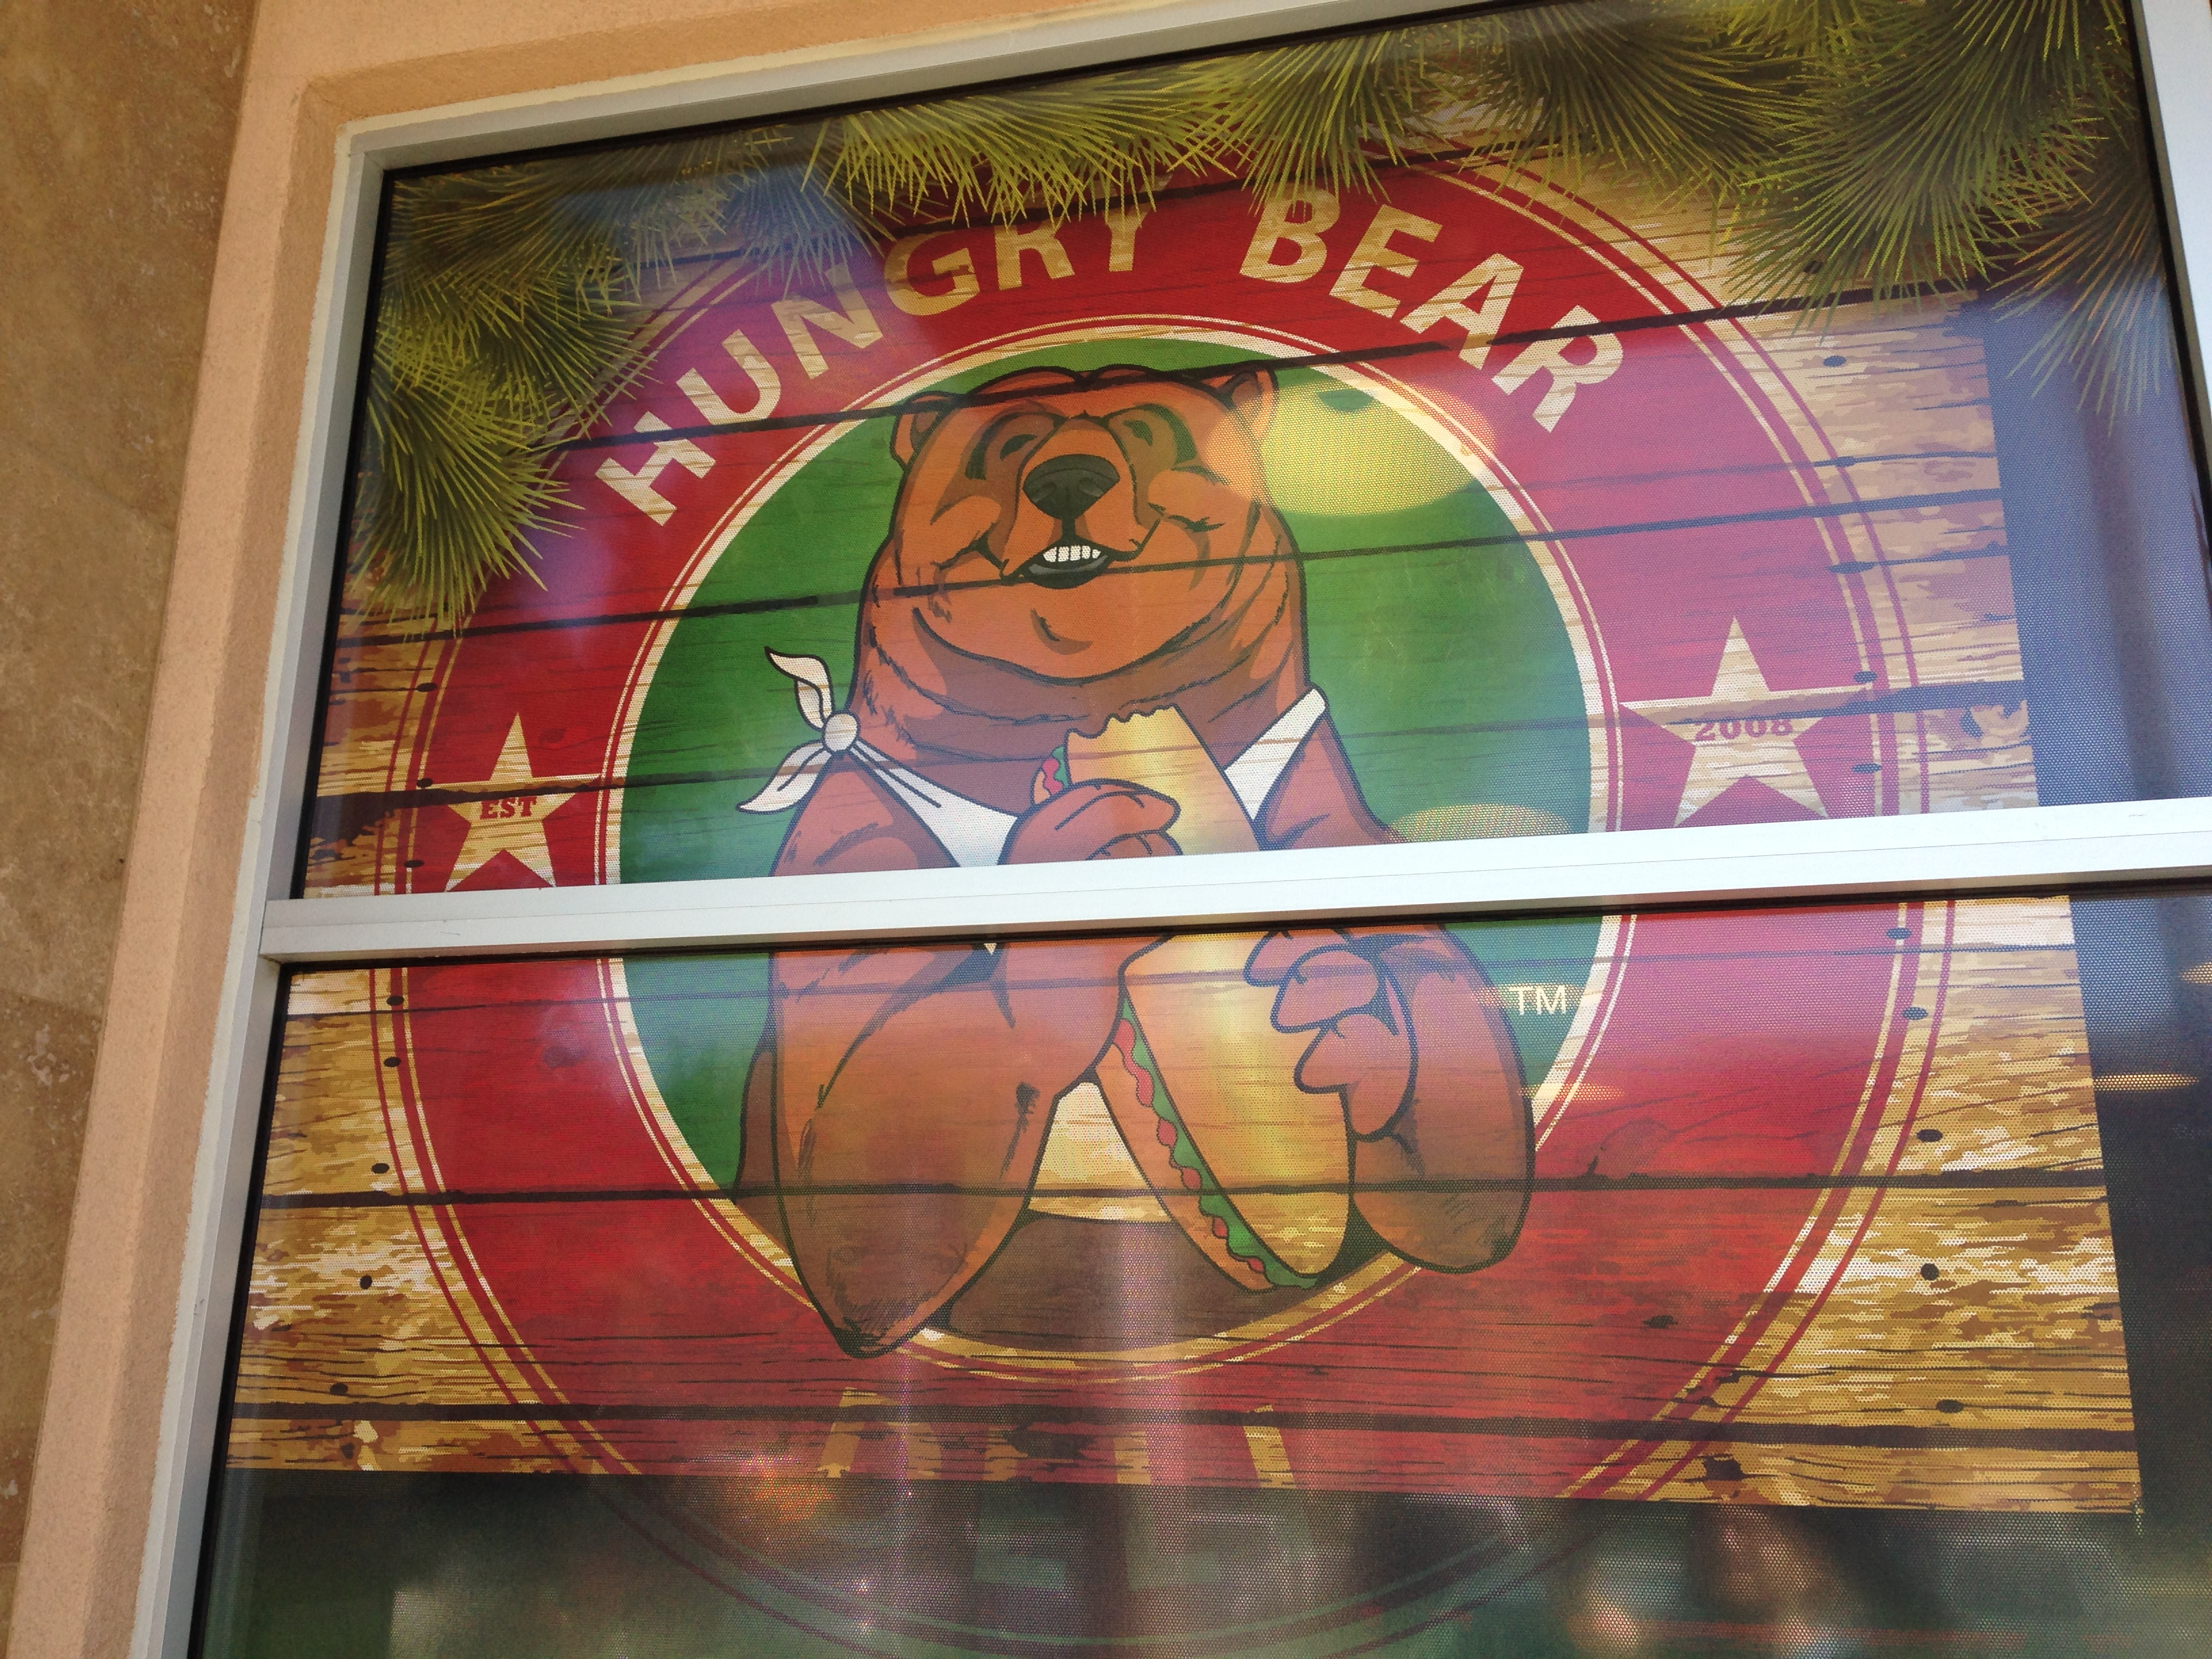 Hungry Bear Deli presents itself well.